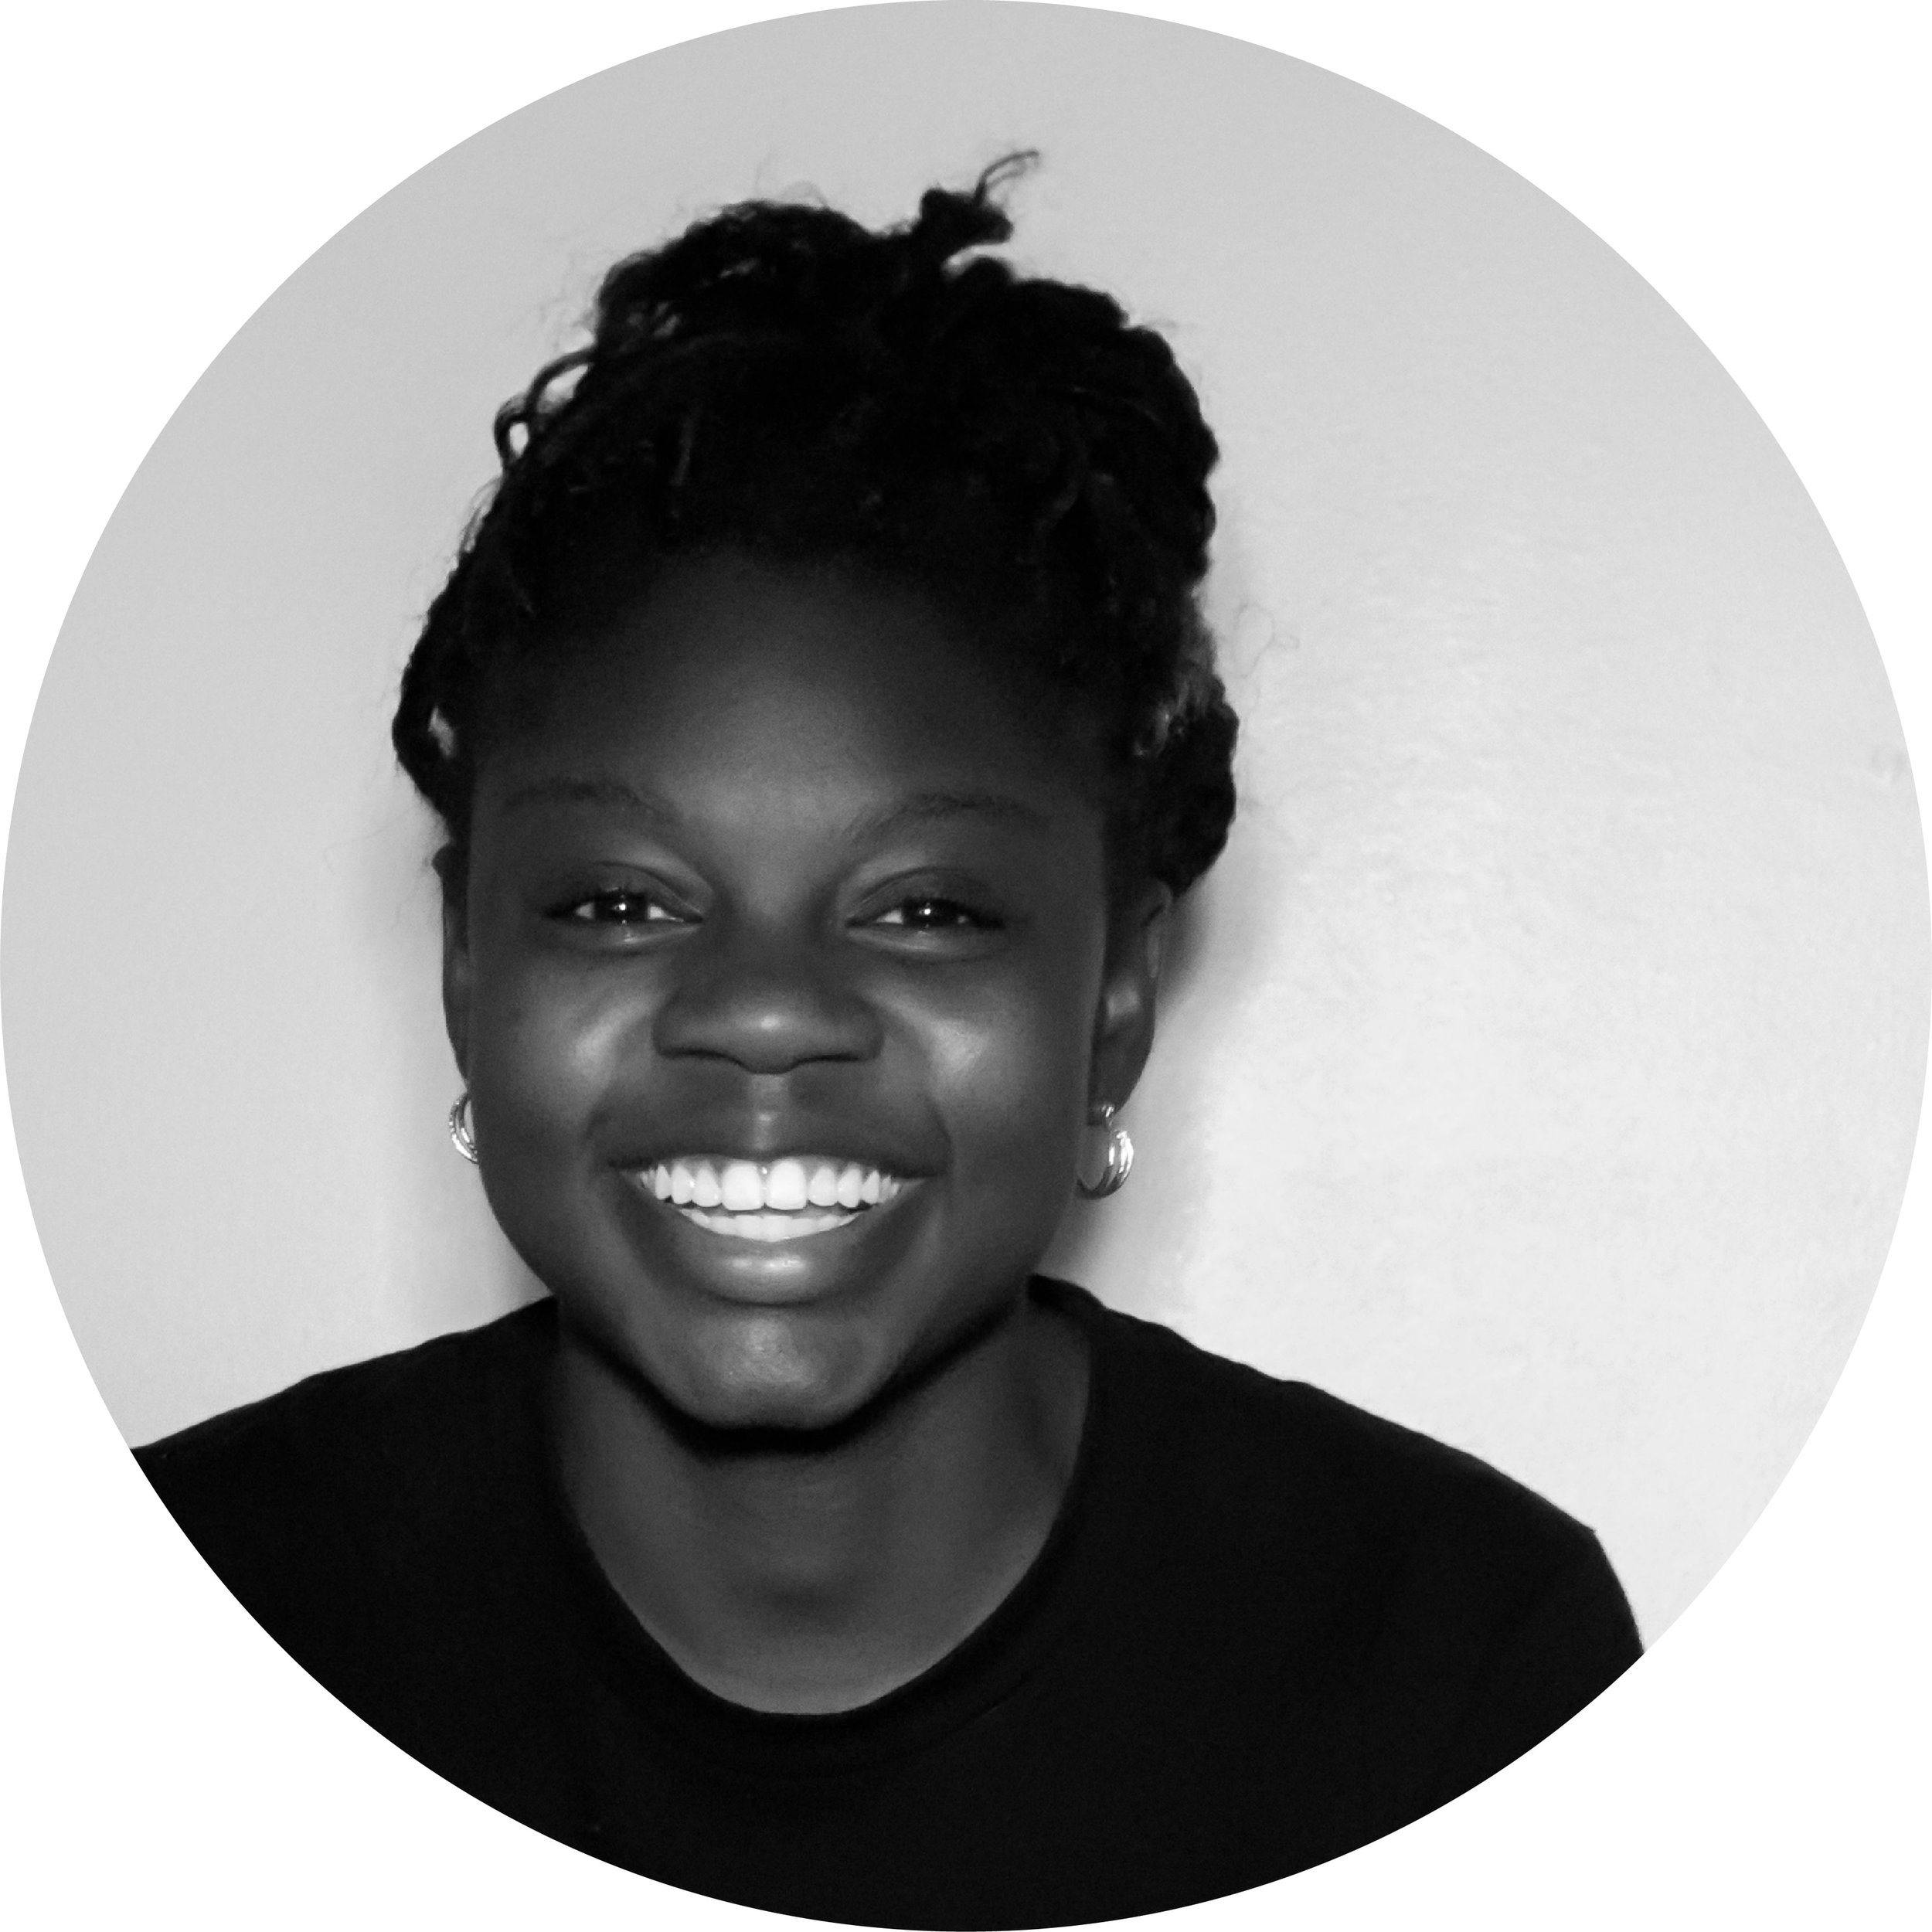 Ayisha Jackson - Ayisha was born in Georgetown, Guyana and raised in the boroughs of New York City, and was brought to Providence through school at Brown University. She felt the call to missions in her senior year after learning about the importance of service and community in the faith.